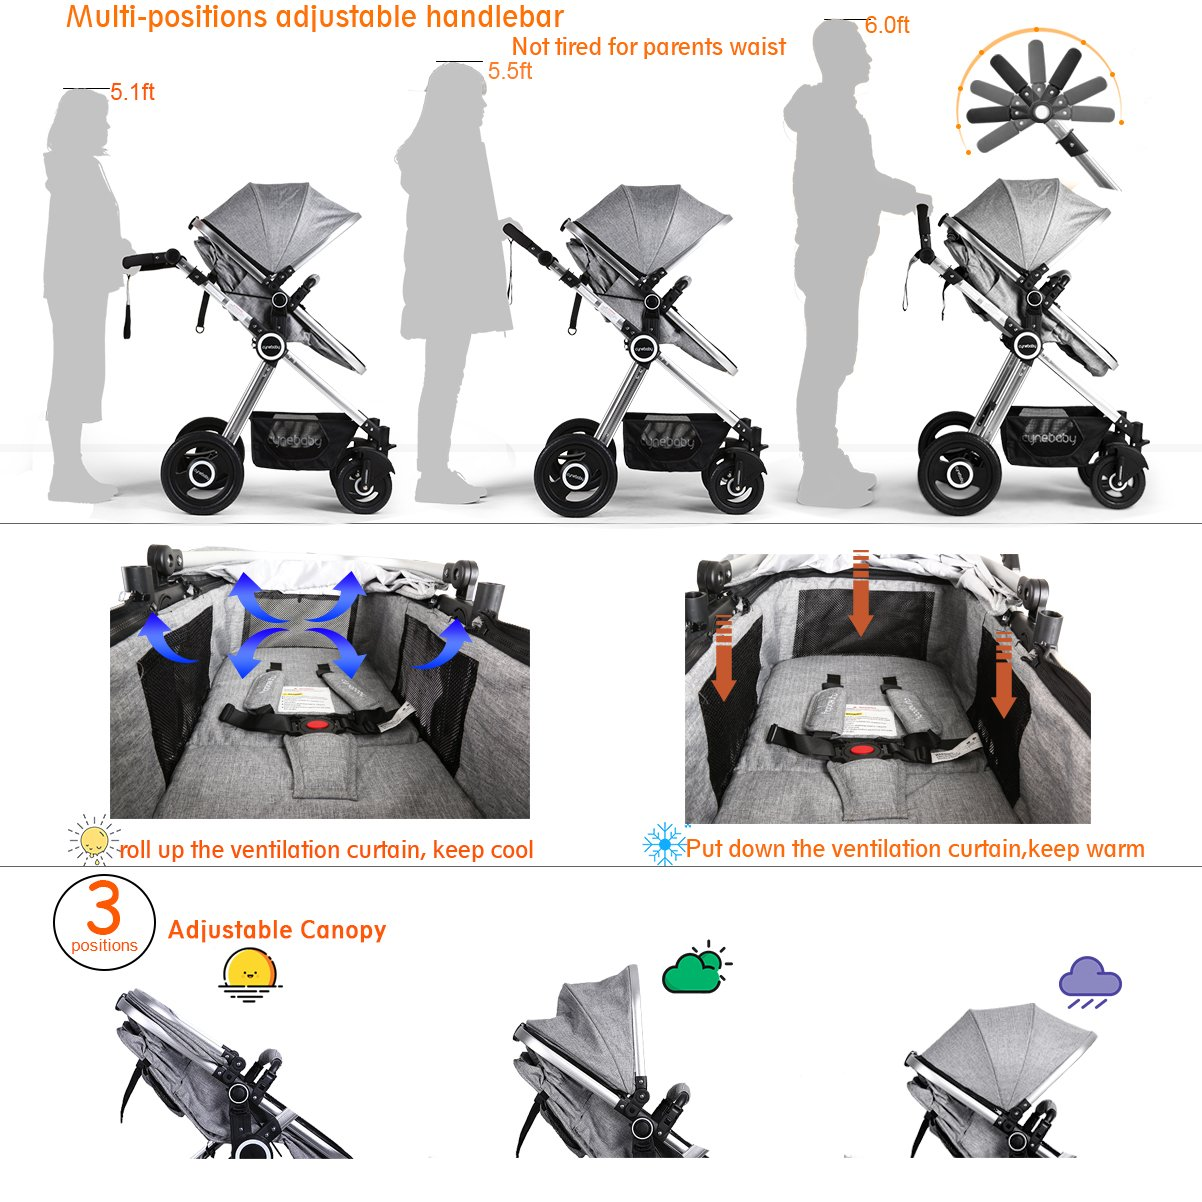 Infant Toddler Stroller Folding Convertible Carriage Infant Anti-Shock High View Luxury Baby Stroller Newborn Pram Stroller Pushchair Stroller for Babies(Light Camel) by Cynebaby (Image #8)